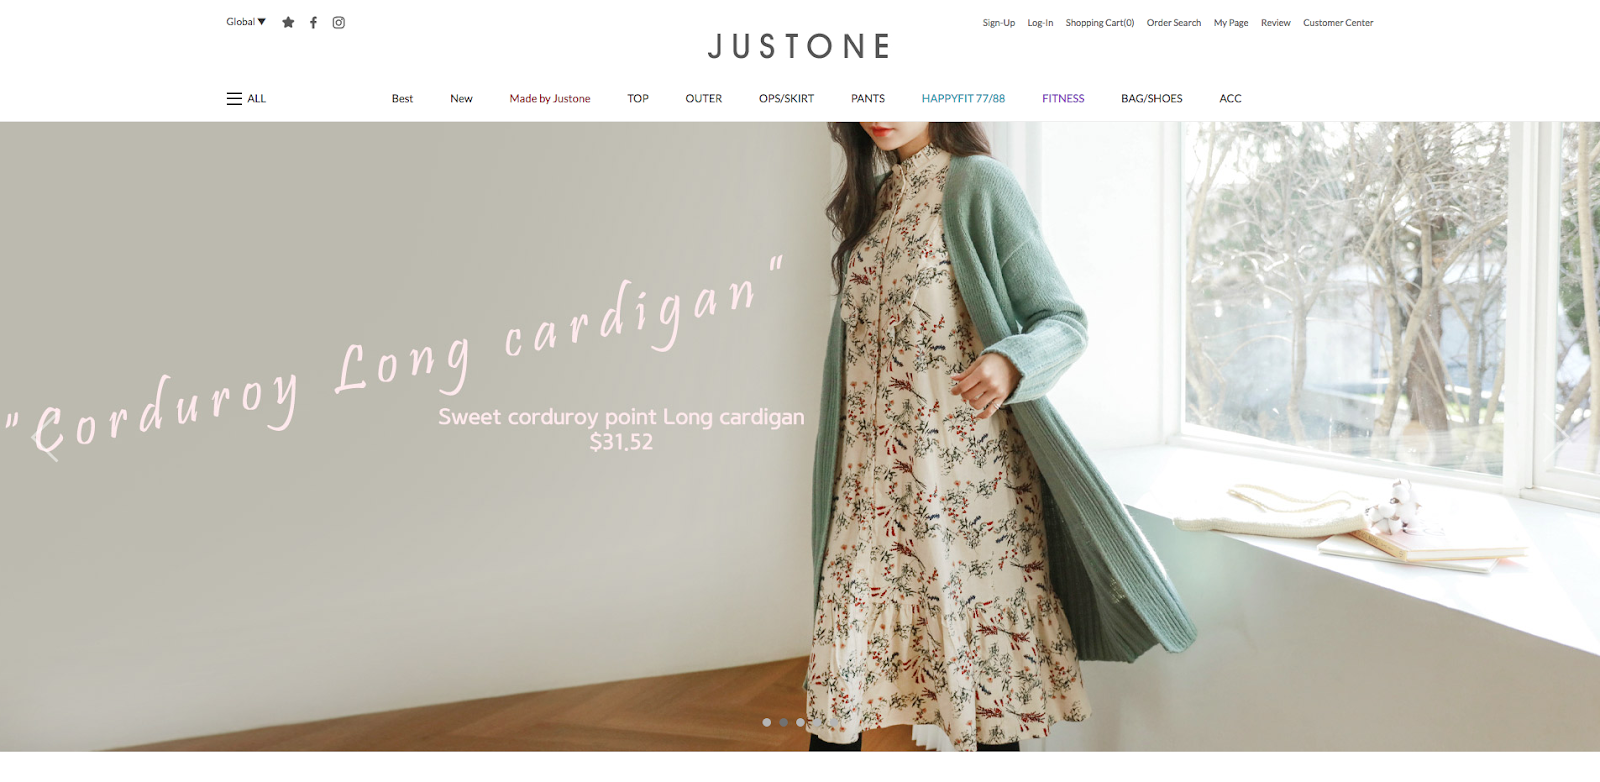 justone online shopping clothes fashion